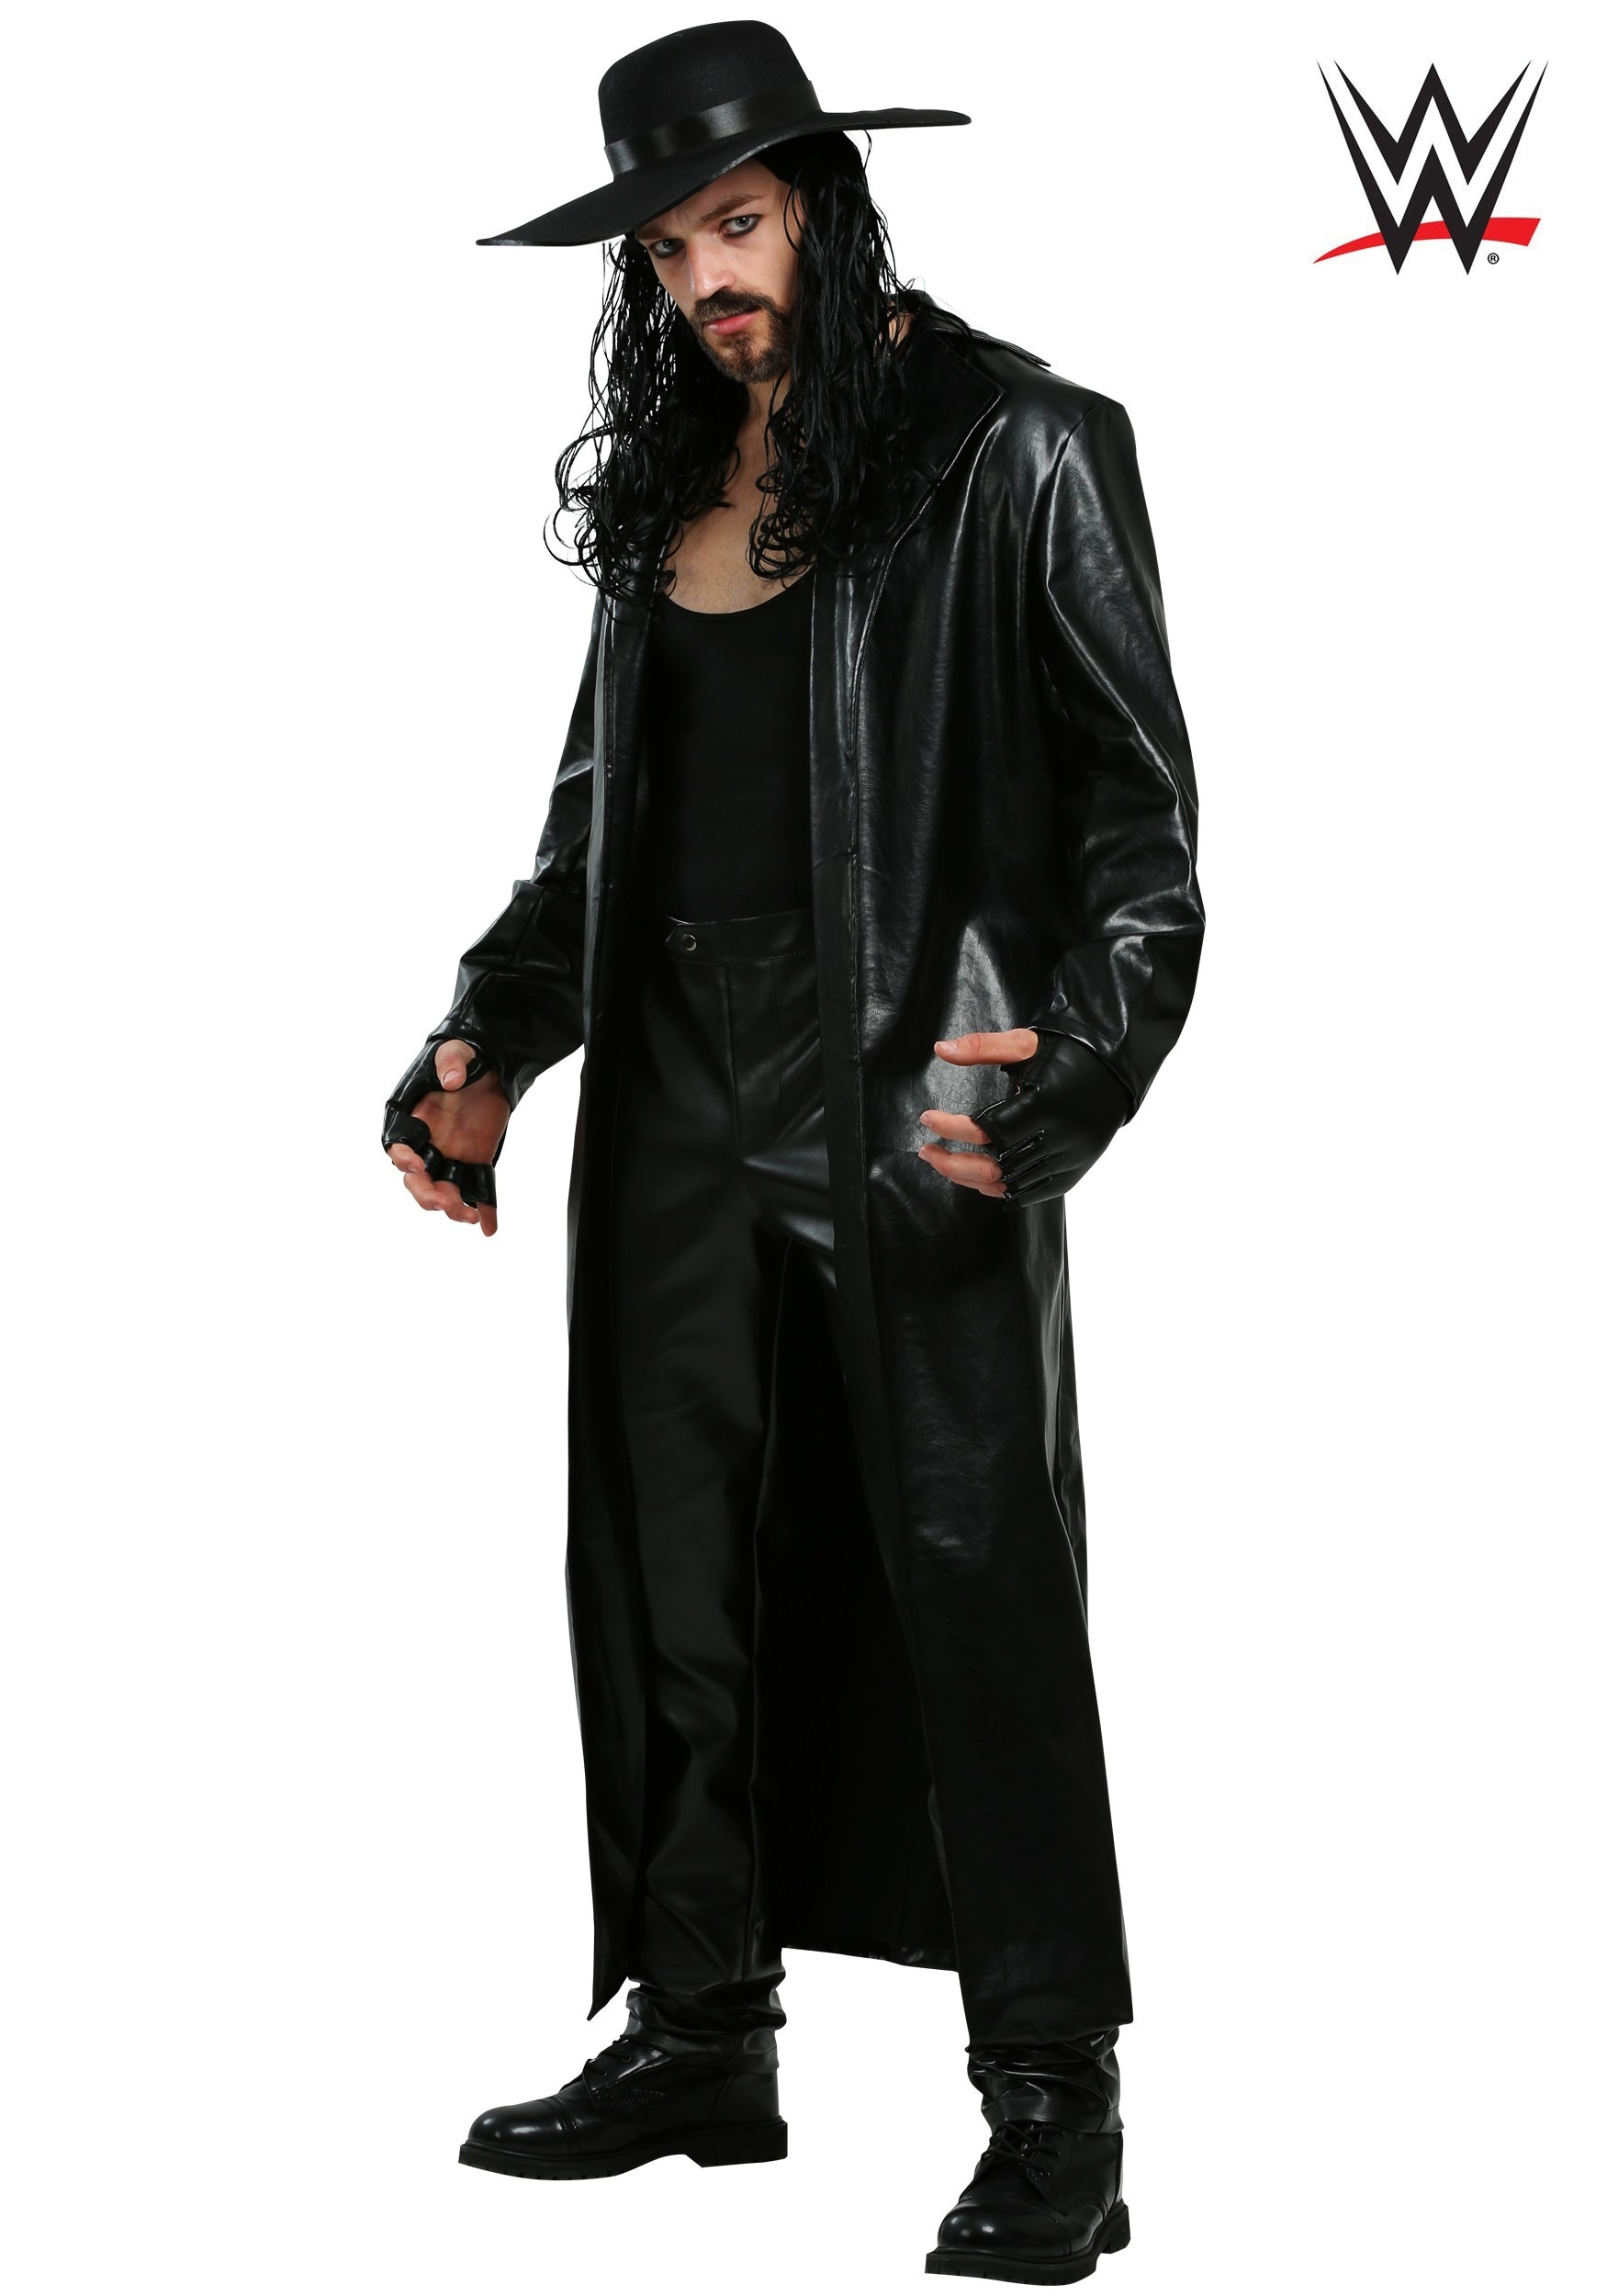 WWE Undertaker Costume for Men